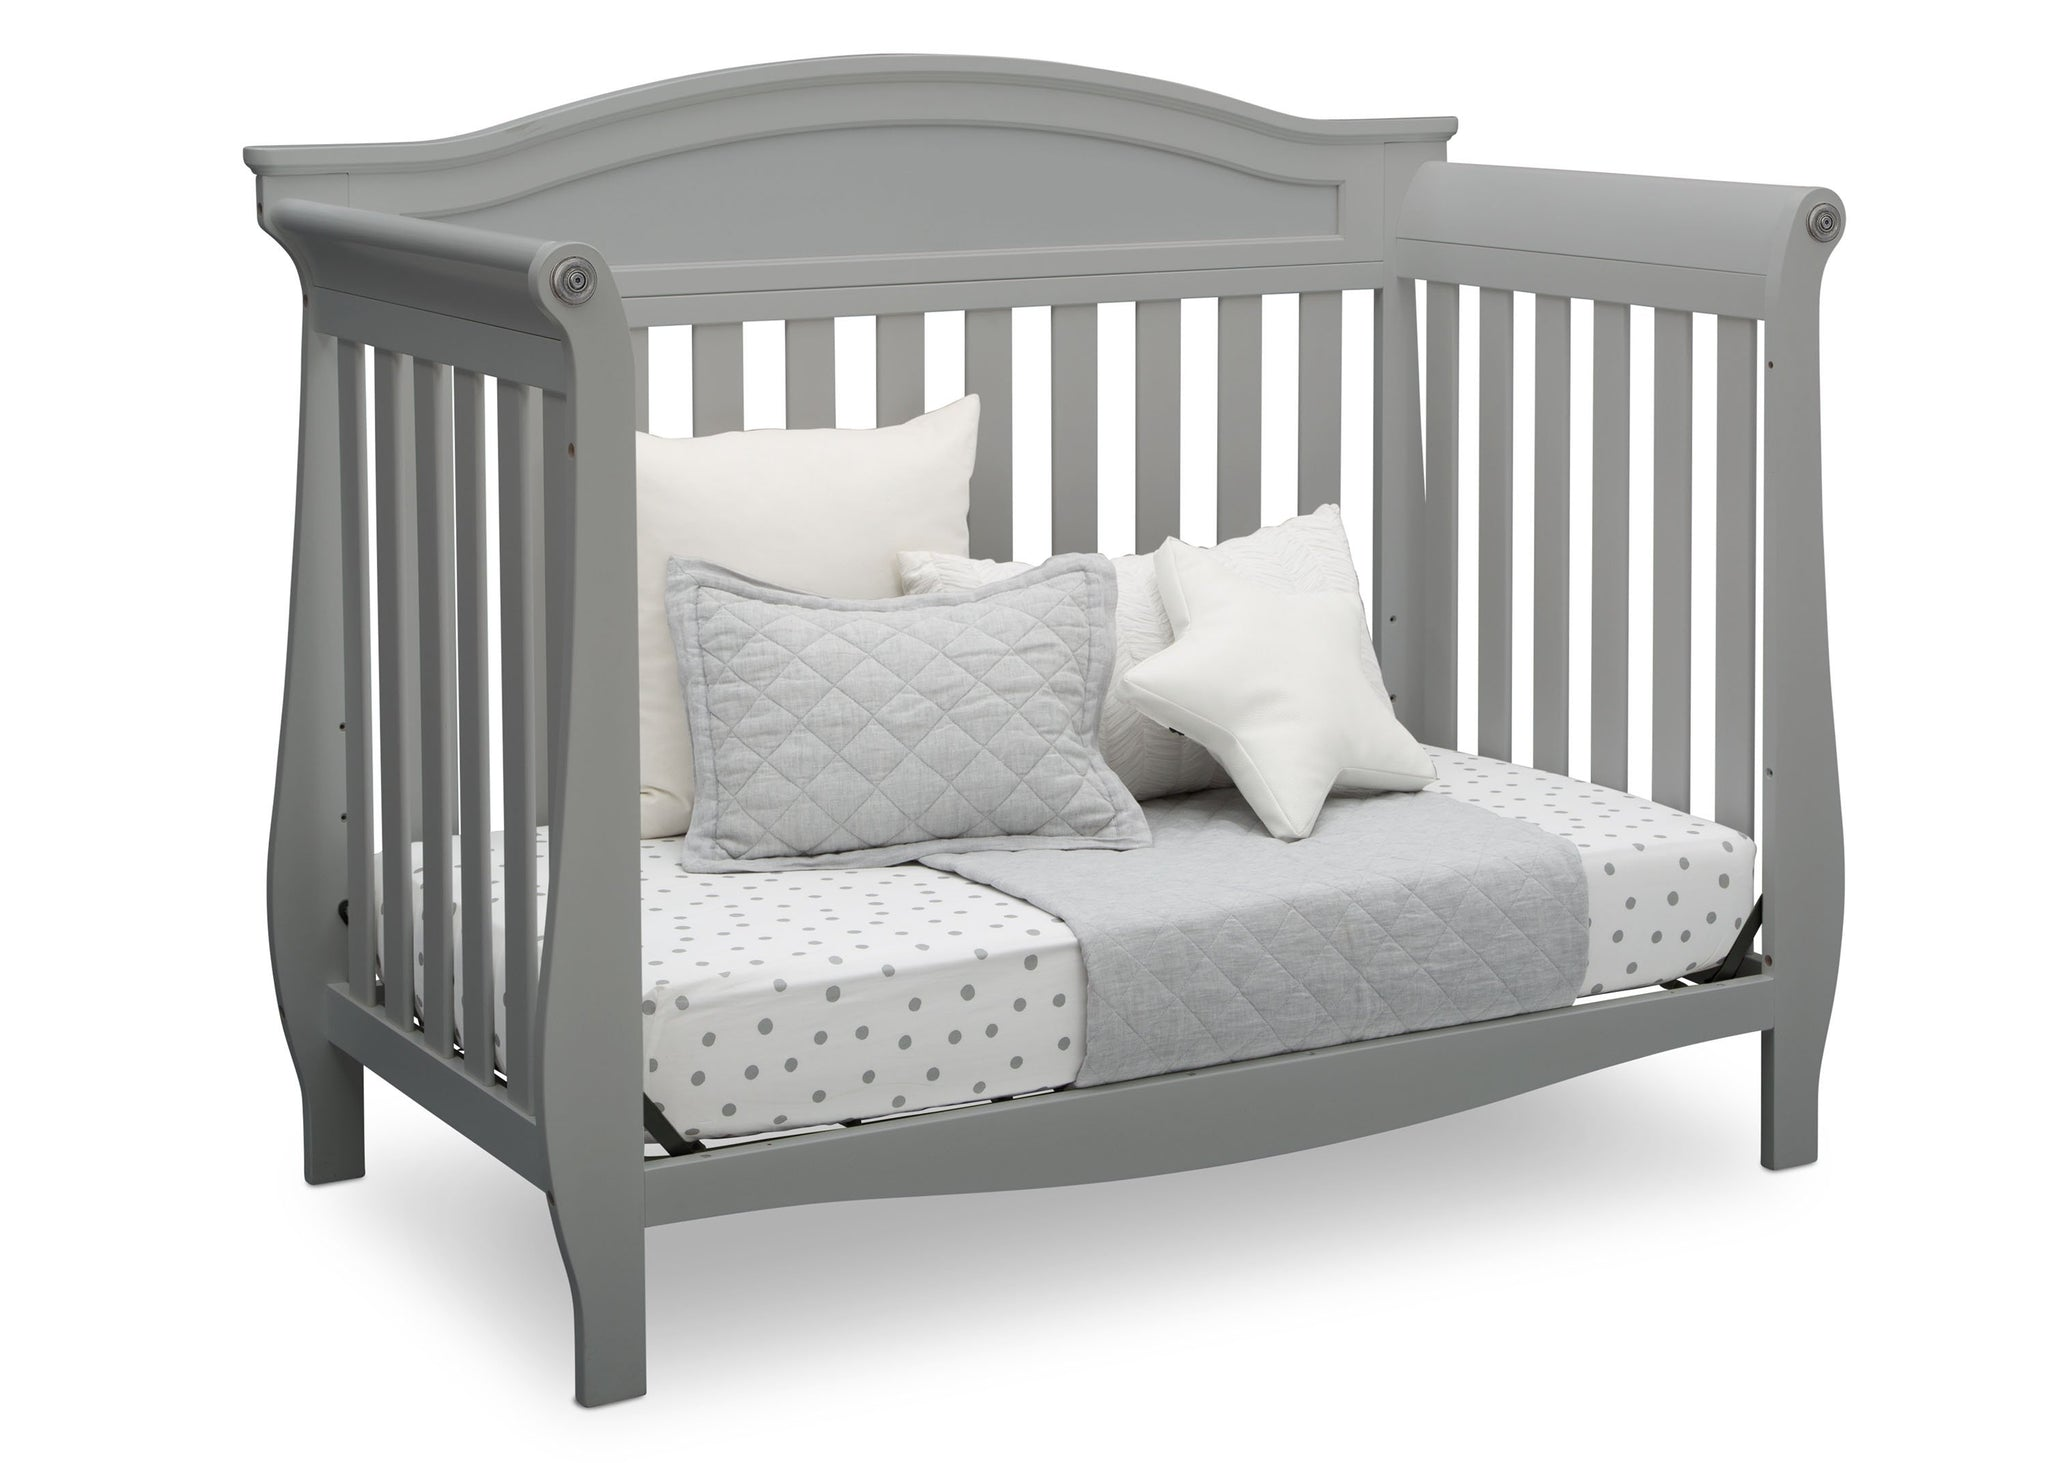 Delta Children Grey (026) Lancaster 4-in-1 Convertible Crib (552150), Daybed, a4a